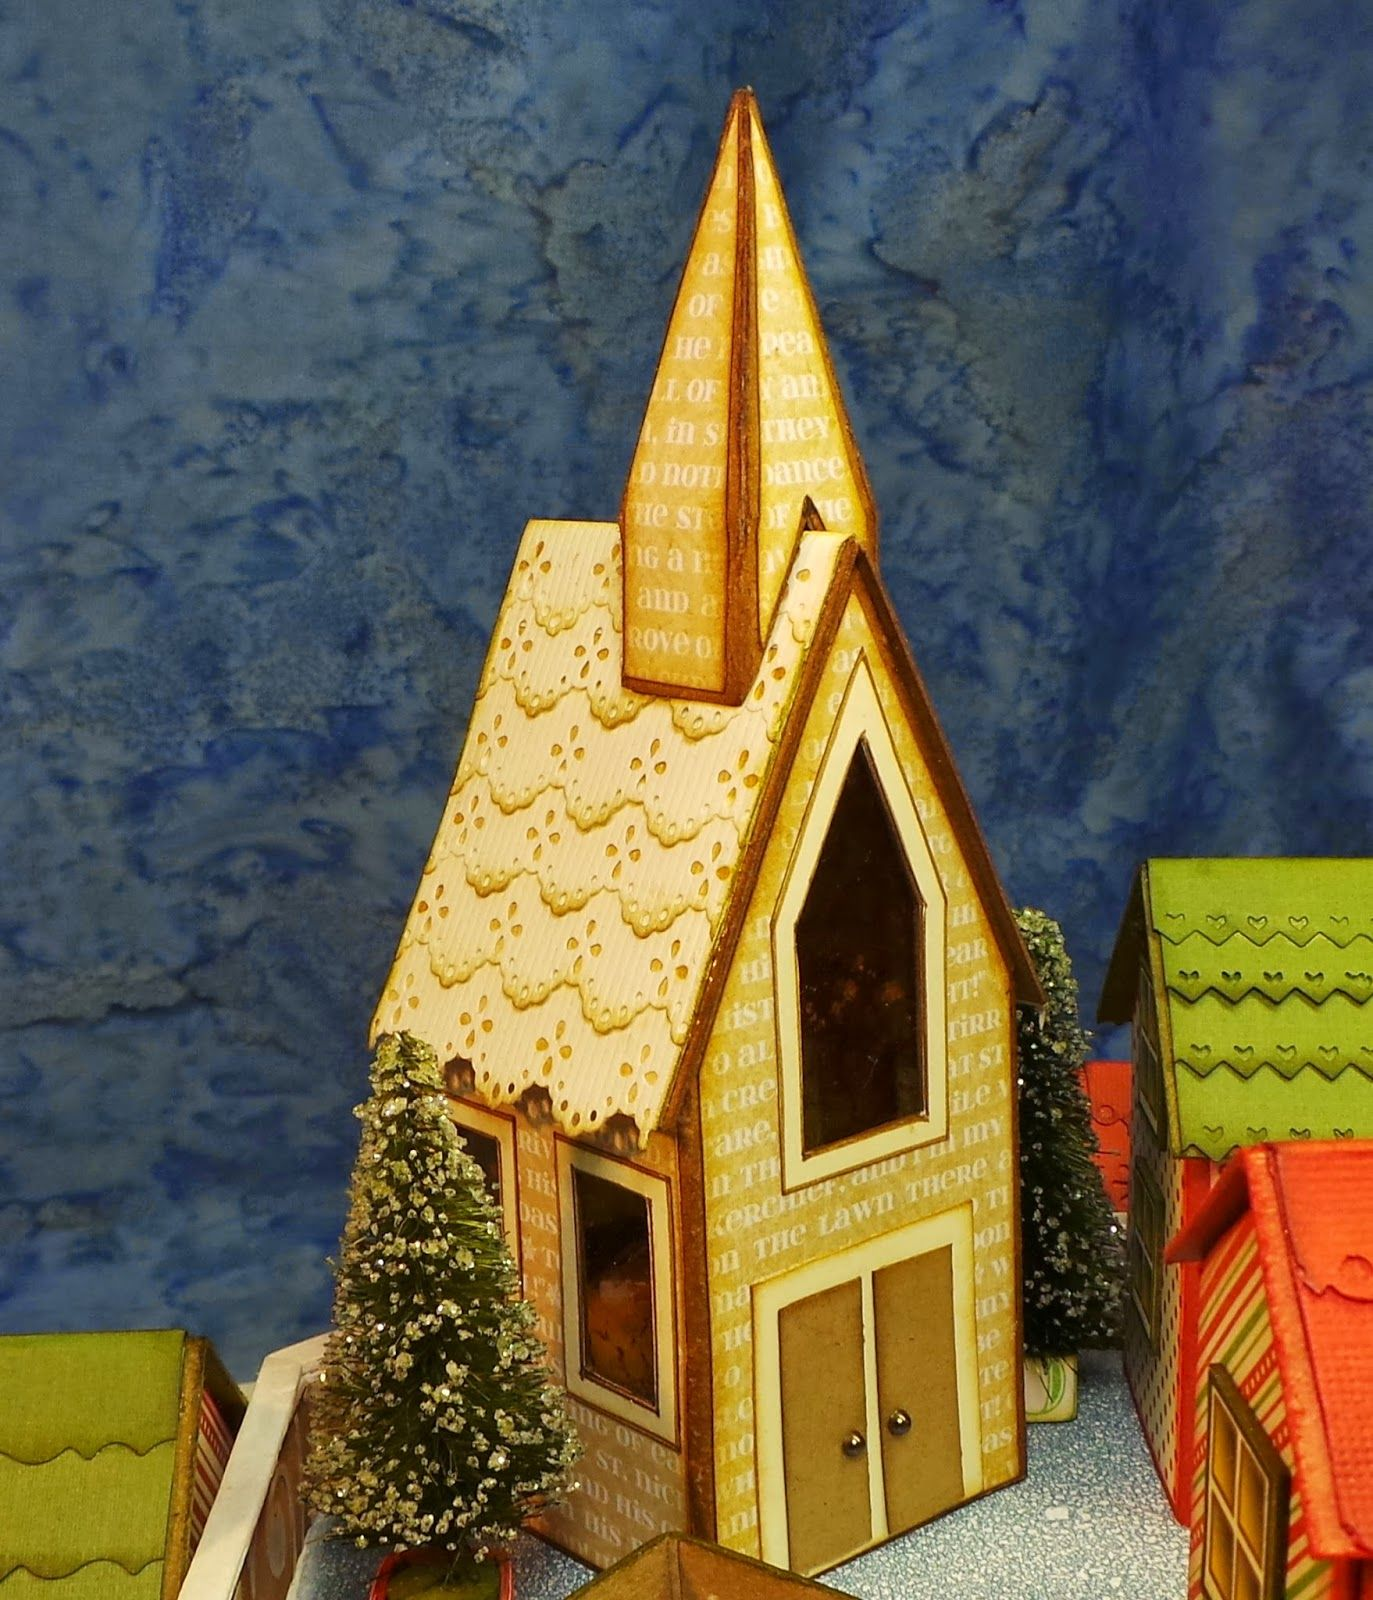 Twas the Night Before Christmas Village by Craft Knife